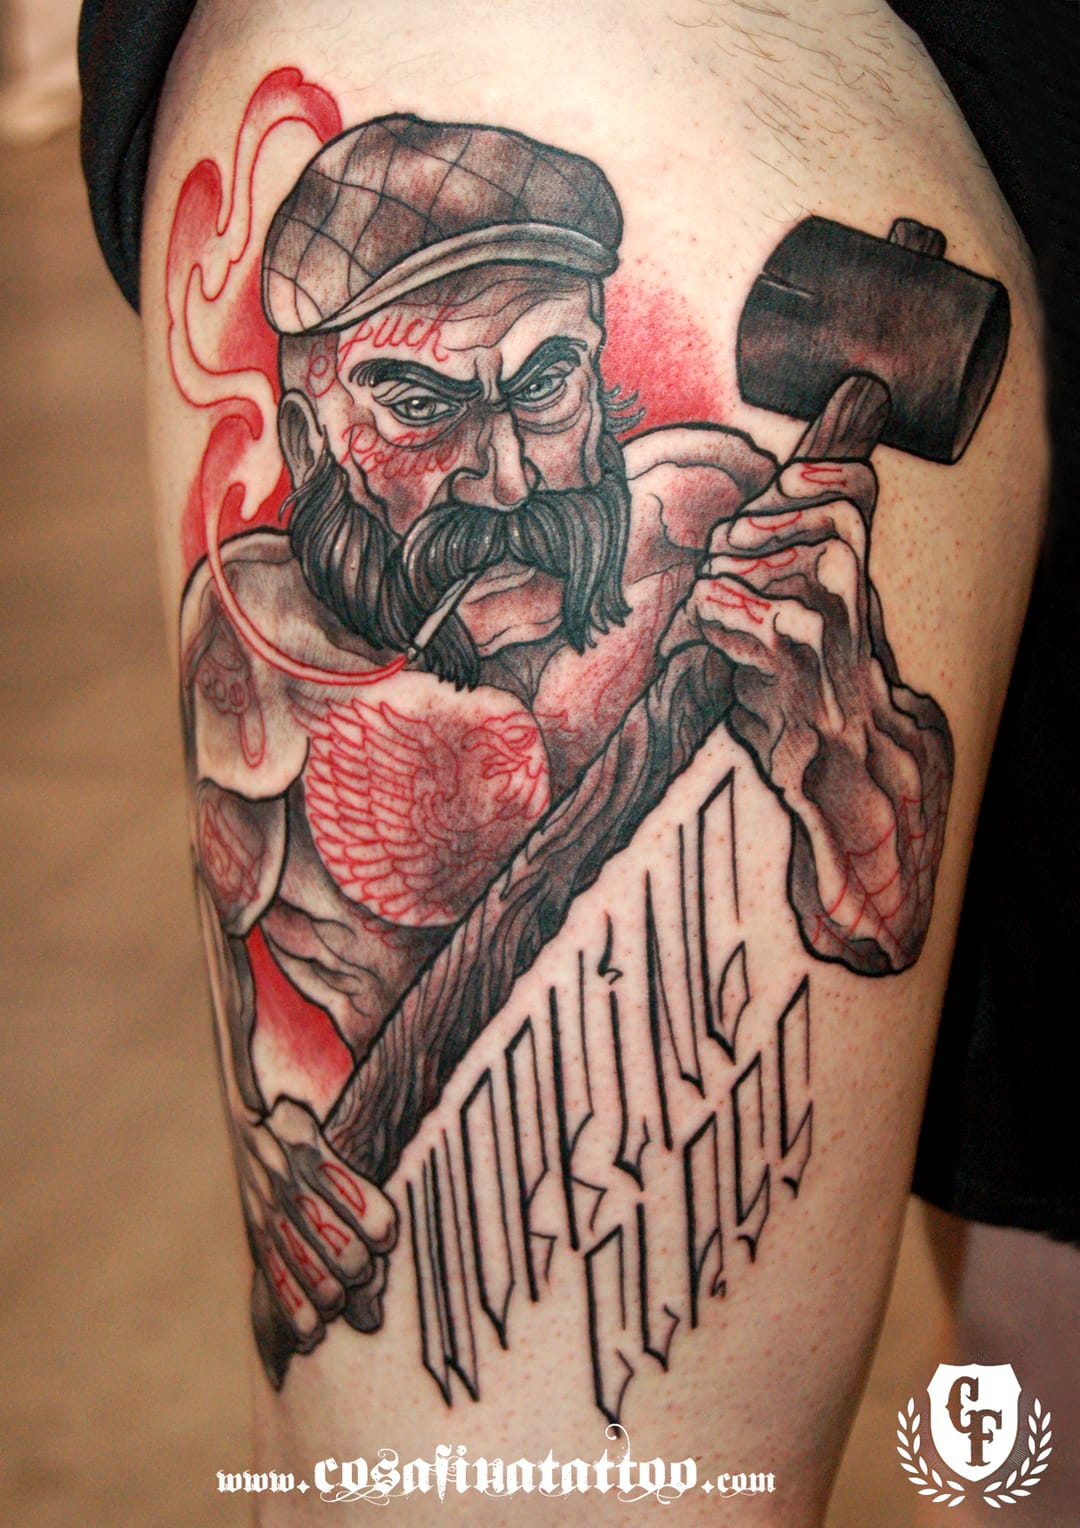 15 strong working class inspired tattoos tattoodo for Tattoo classes online free